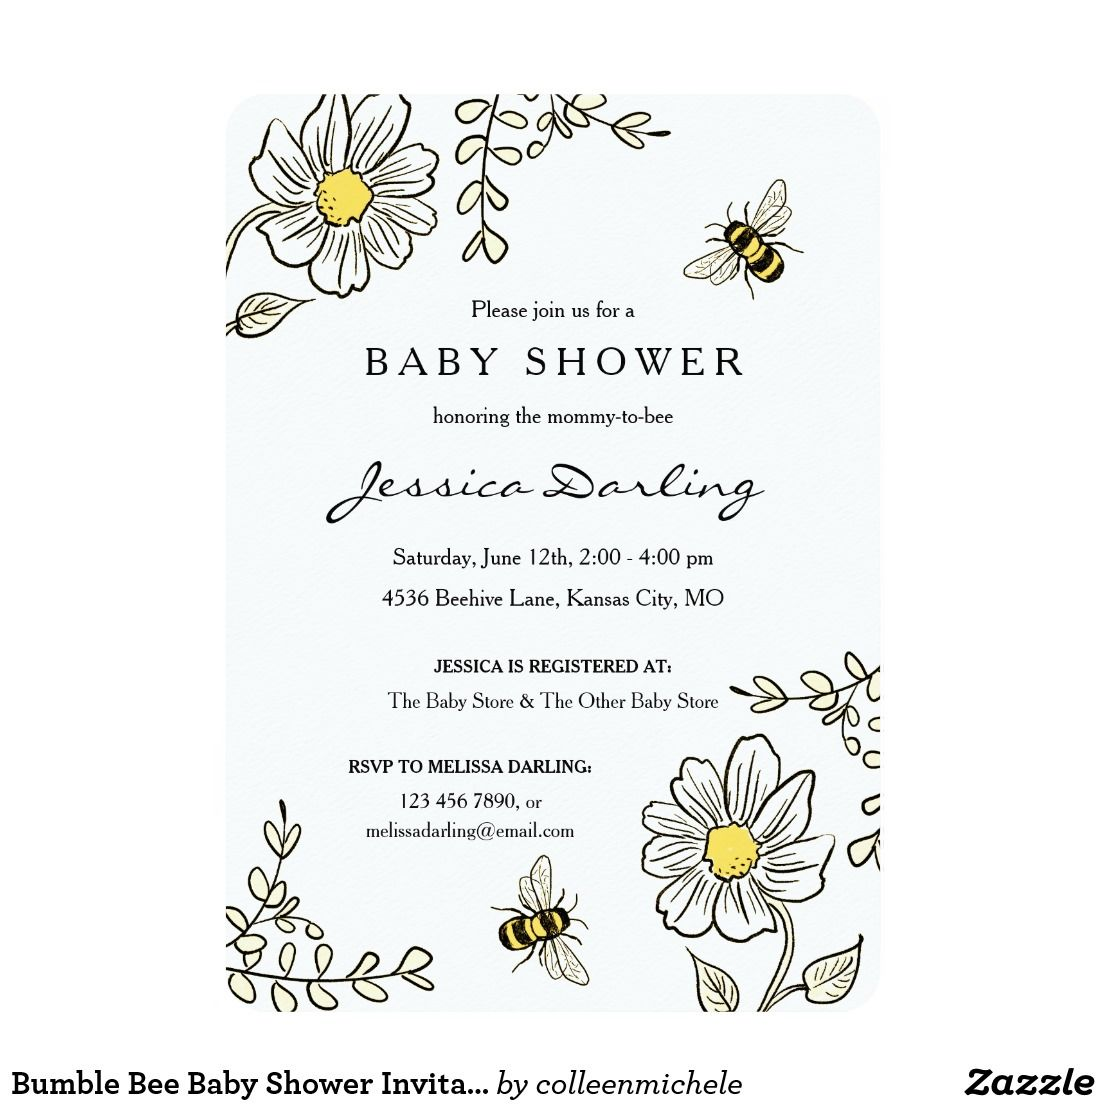 Bumble Bee Baby Shower Invitations | Yellow Floral | January ...